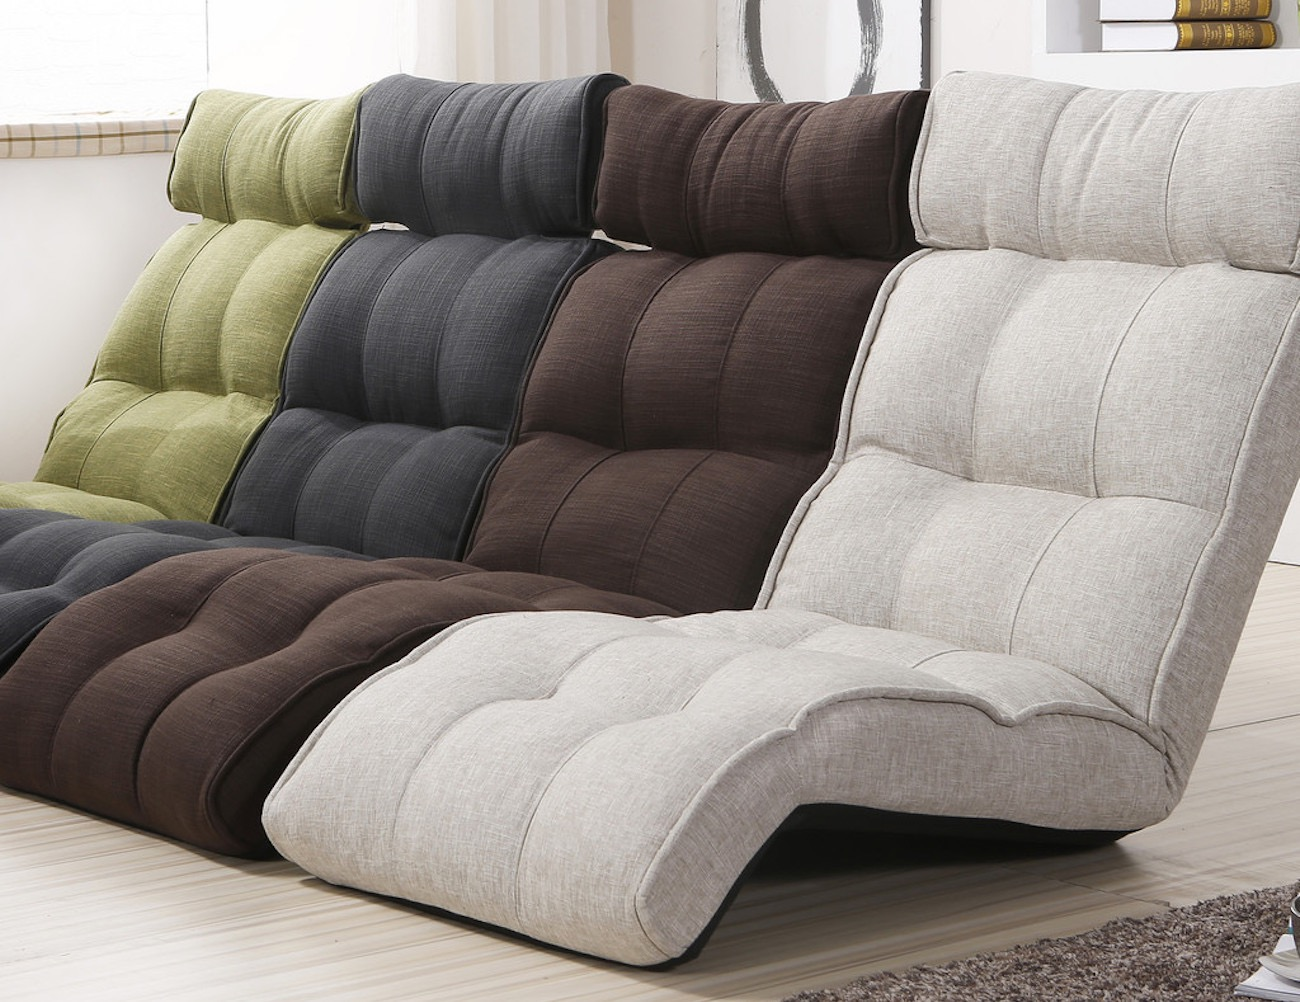 deluxe sofa chair by cozy kino gadget flow. Black Bedroom Furniture Sets. Home Design Ideas